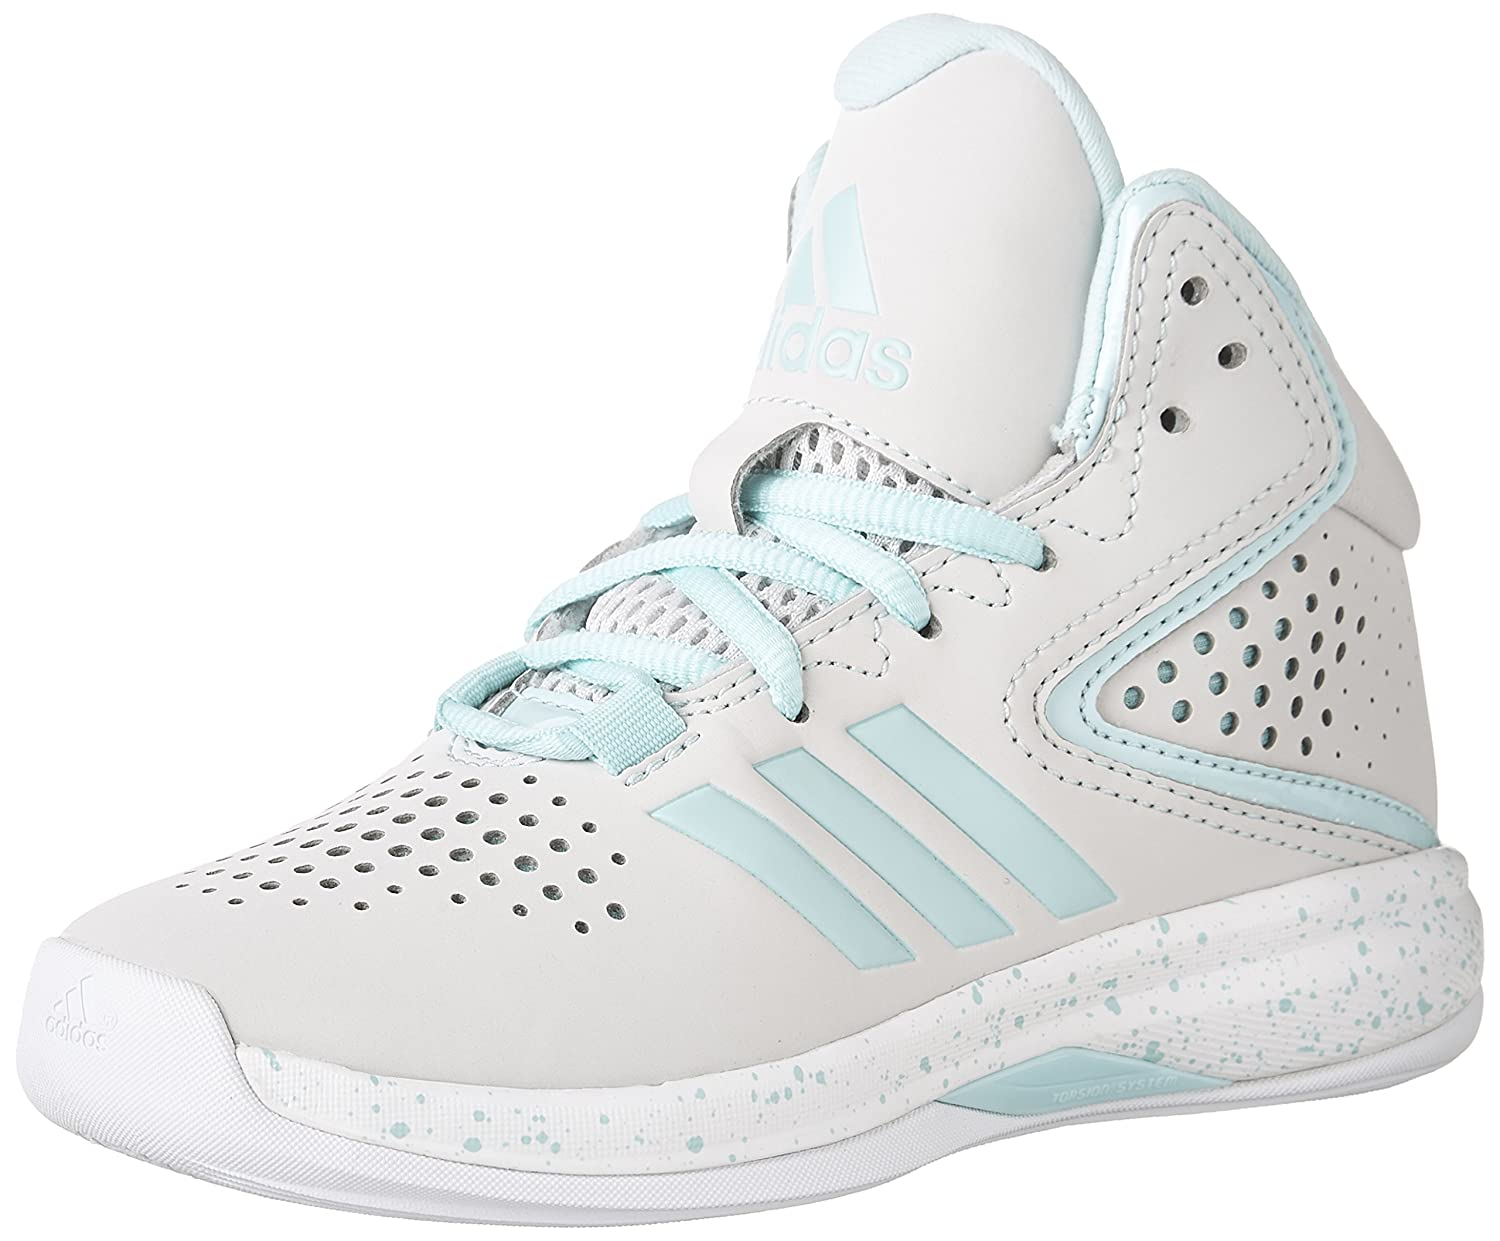 adidas Kids' Cross 'Em Up Basketball Shoes BW1105